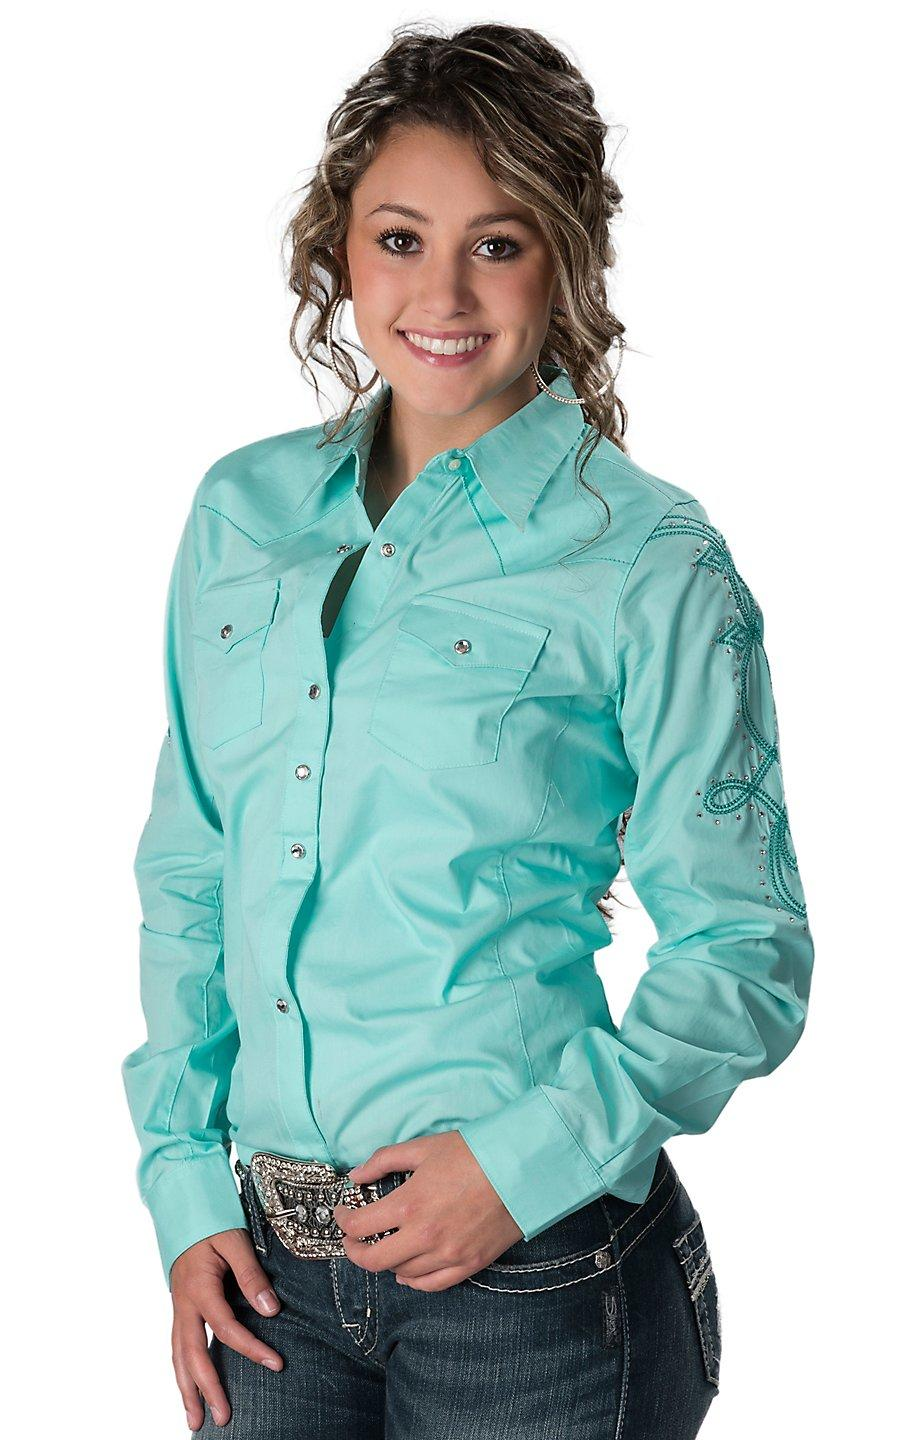 801e8a43 Wrangler® Women's Solid Turquoise with from Cavender's